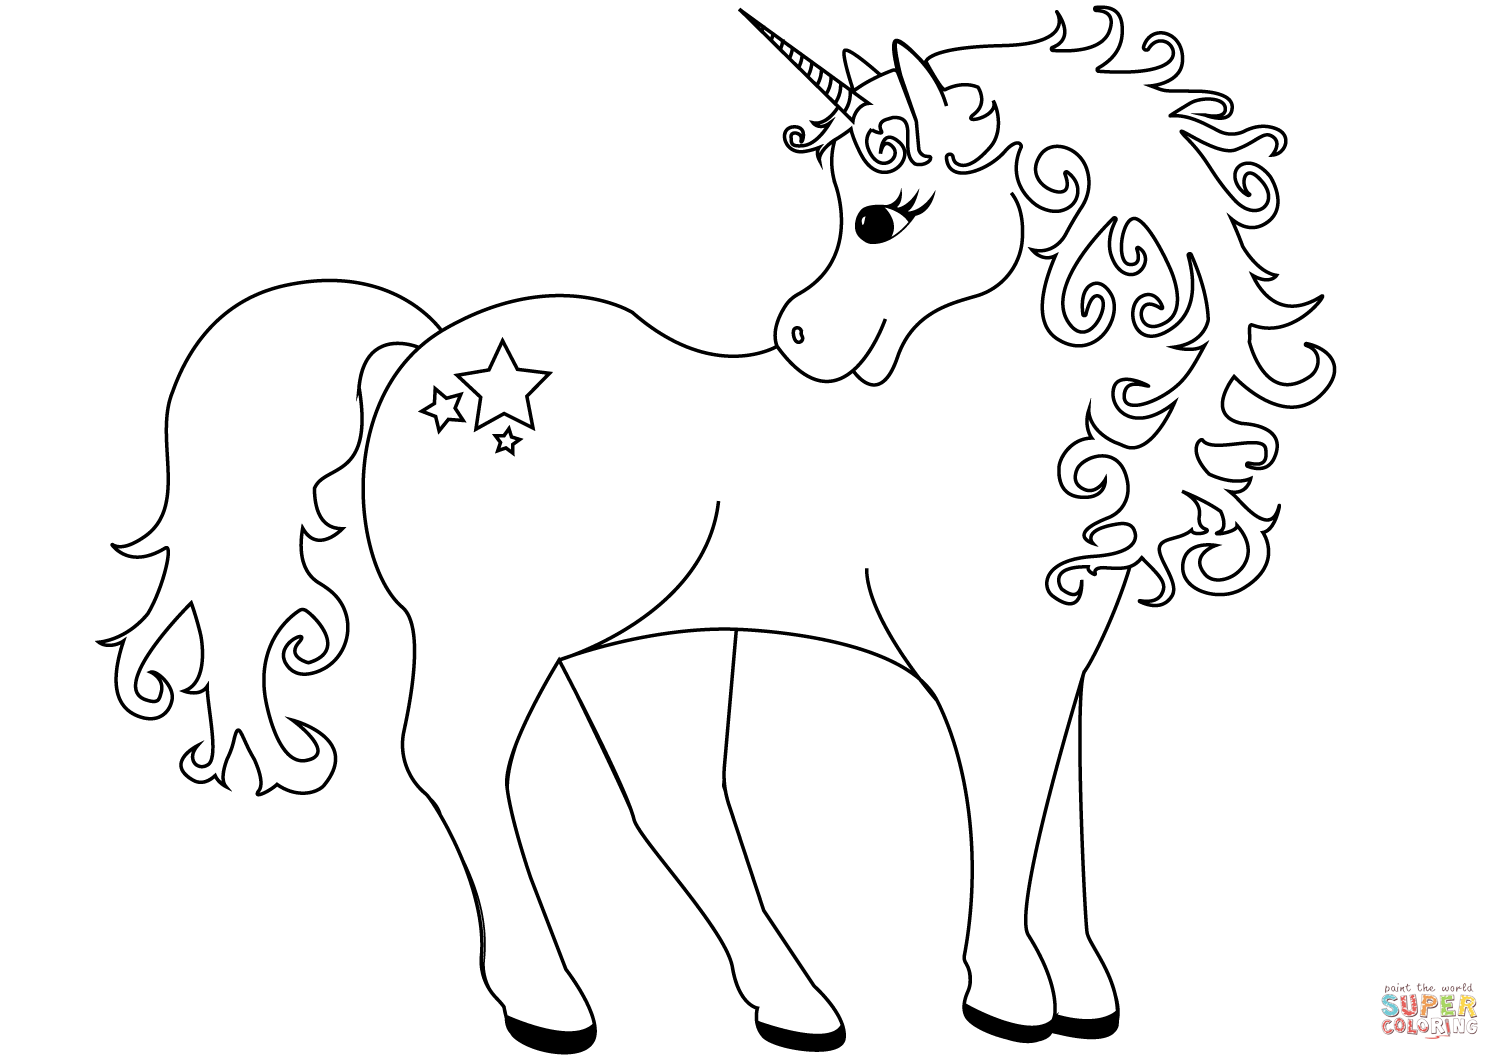 printable cute unicorn coloring pages cute unicorn coloring pages at getdrawings free download unicorn pages printable coloring cute